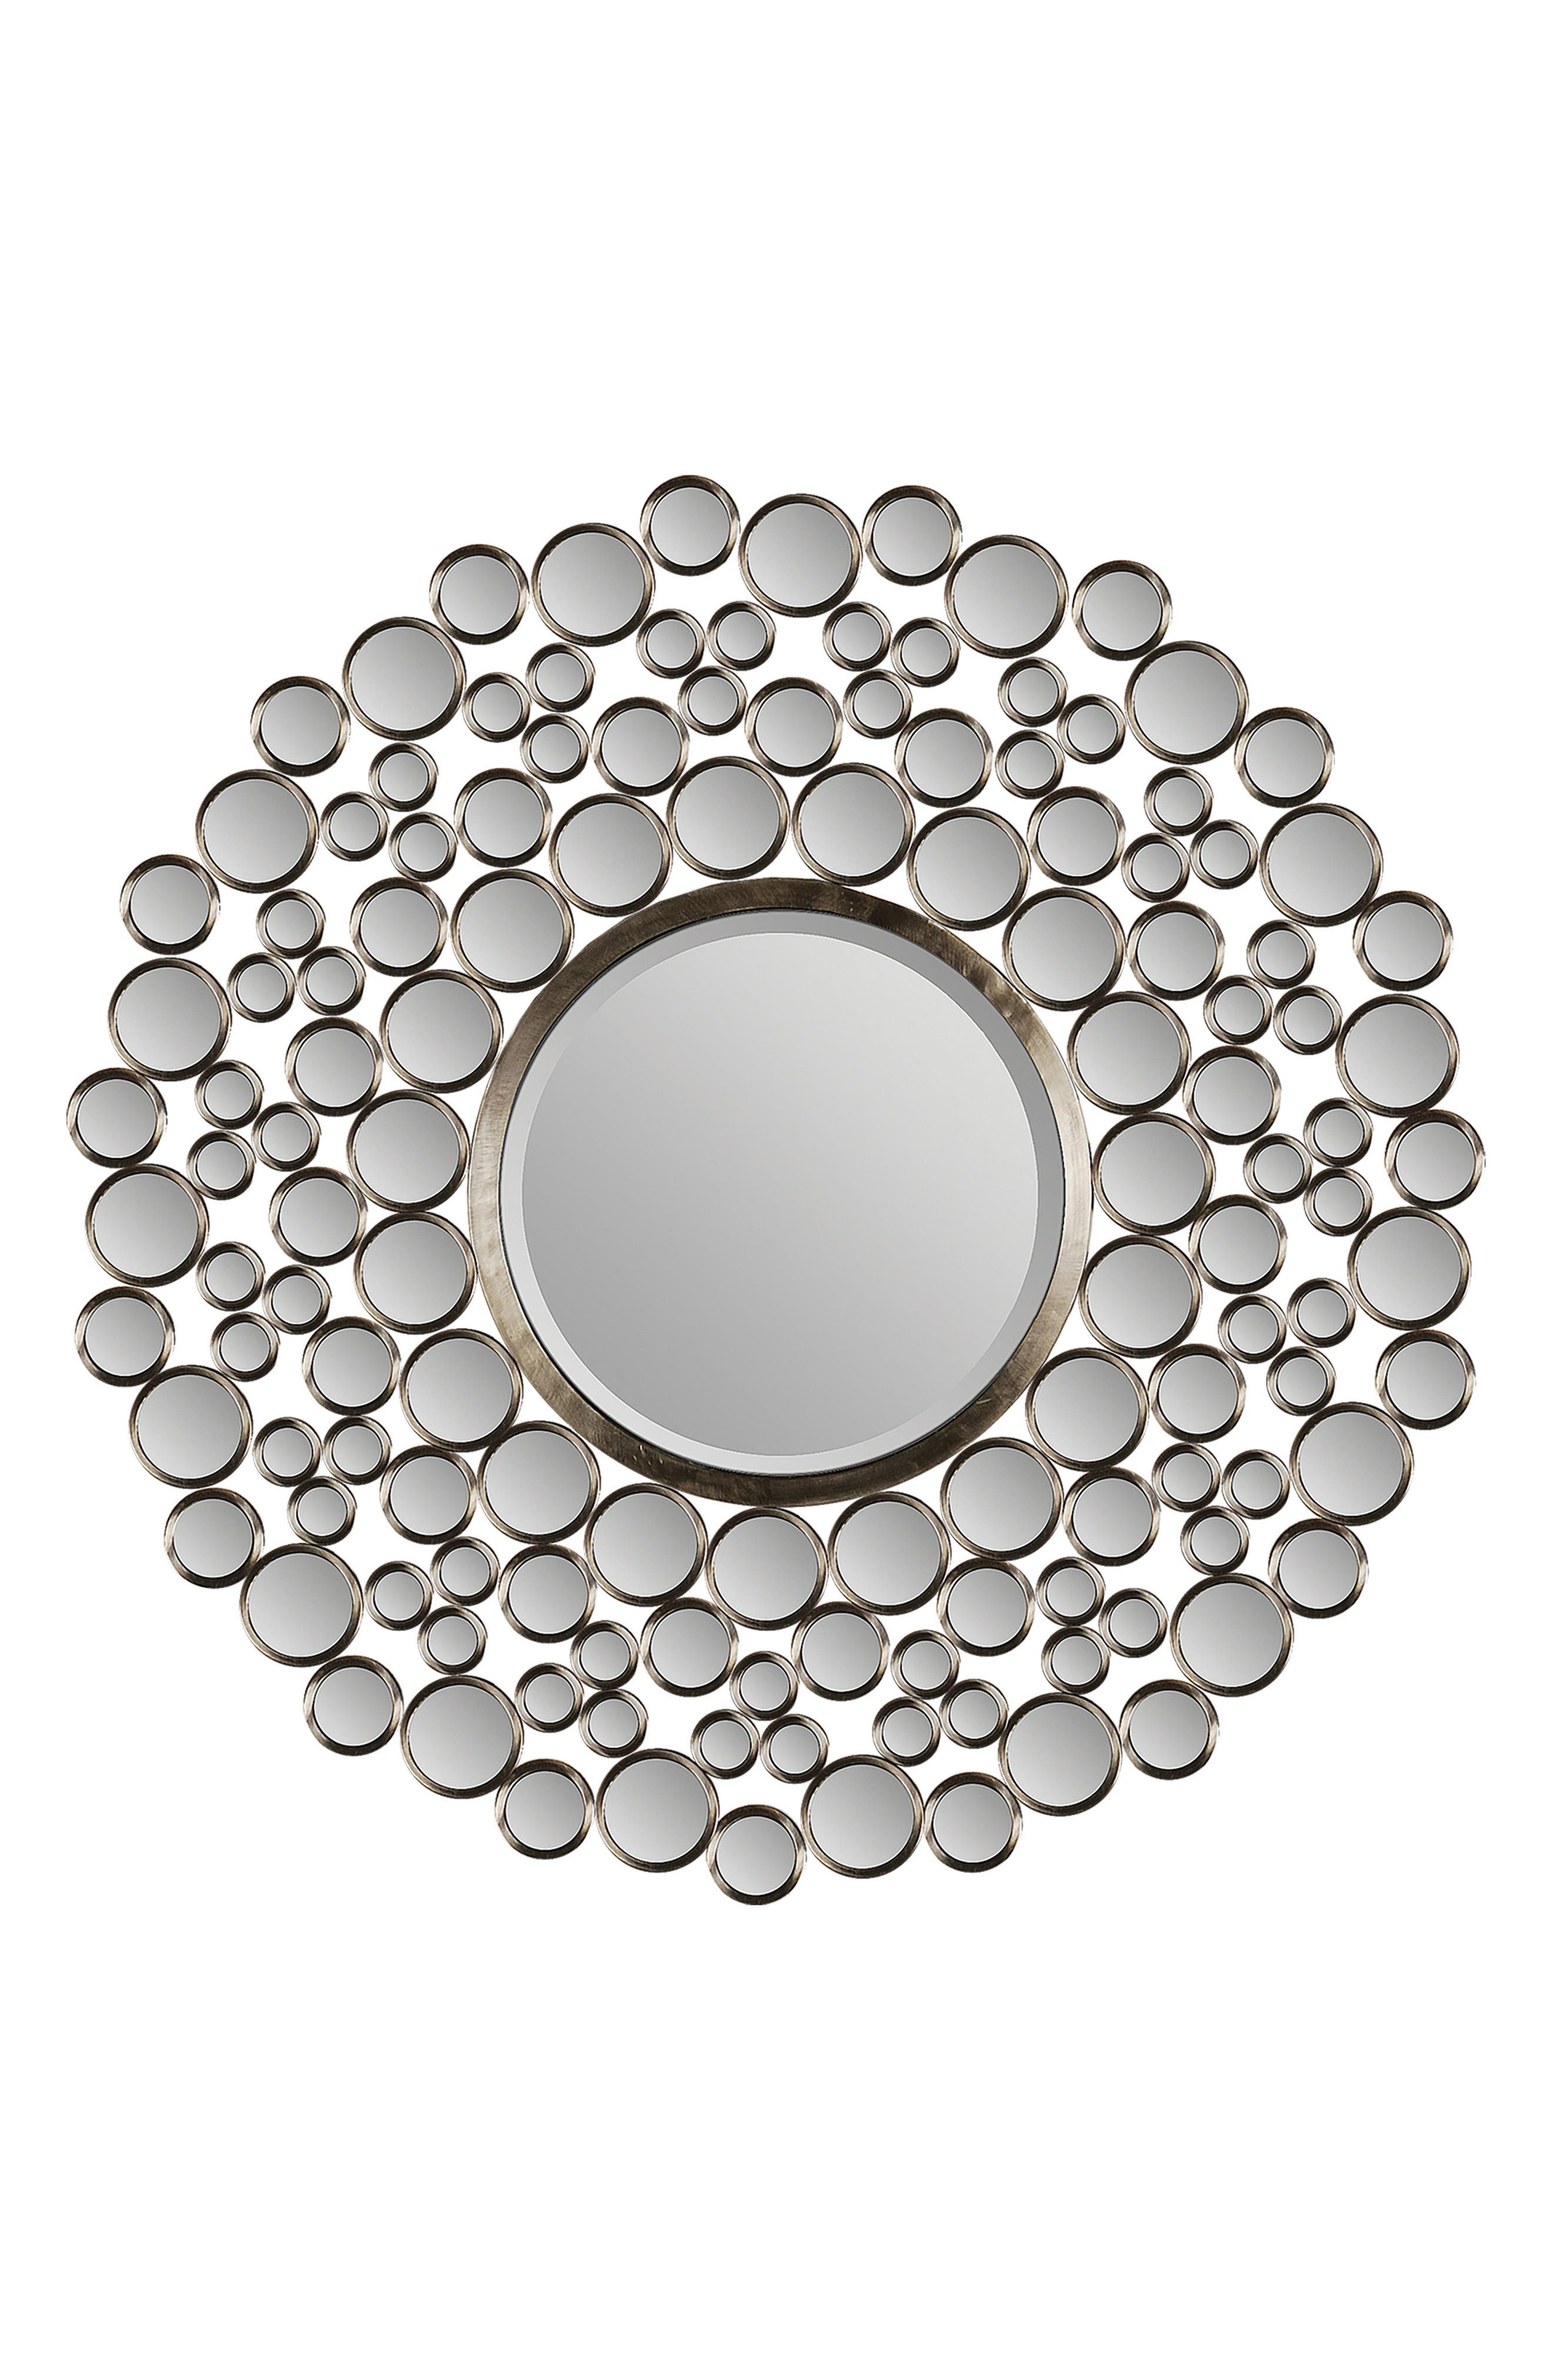 Andromeda Round Mirror,                             Main thumbnail 1, color,                             Satin Nickel